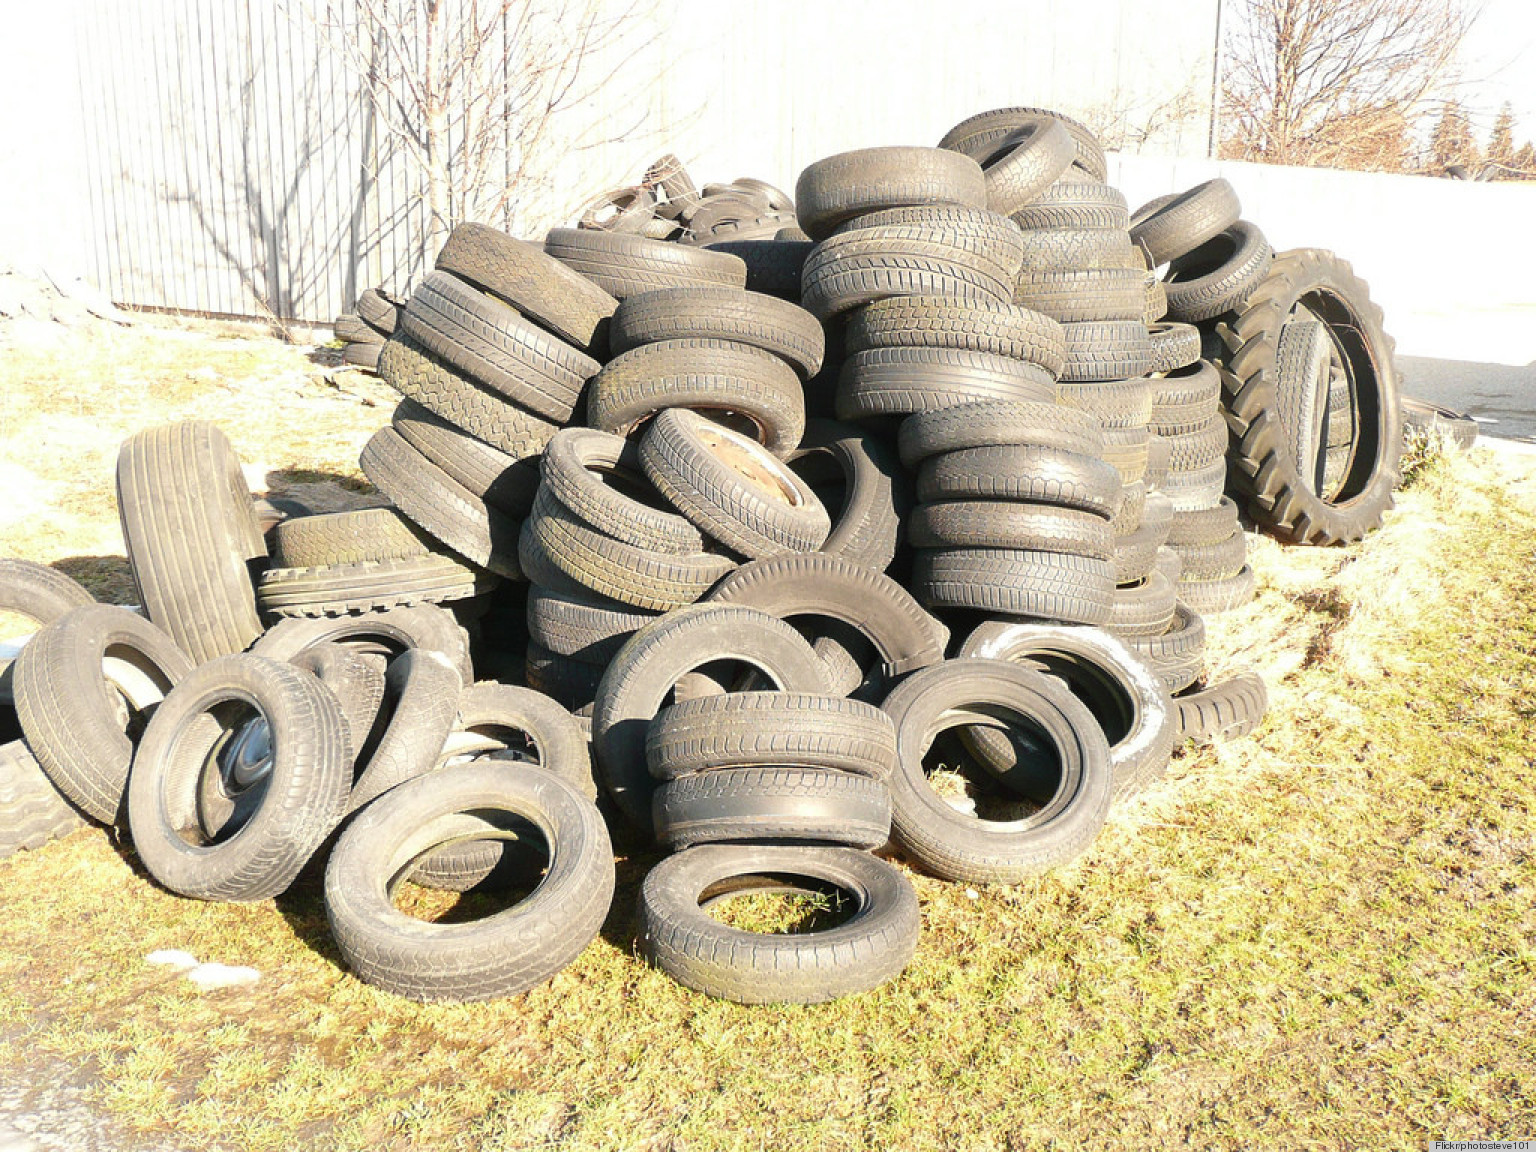 Repurposing ideas 5 new uses for car tires huffpost - What can you do with old tires ...